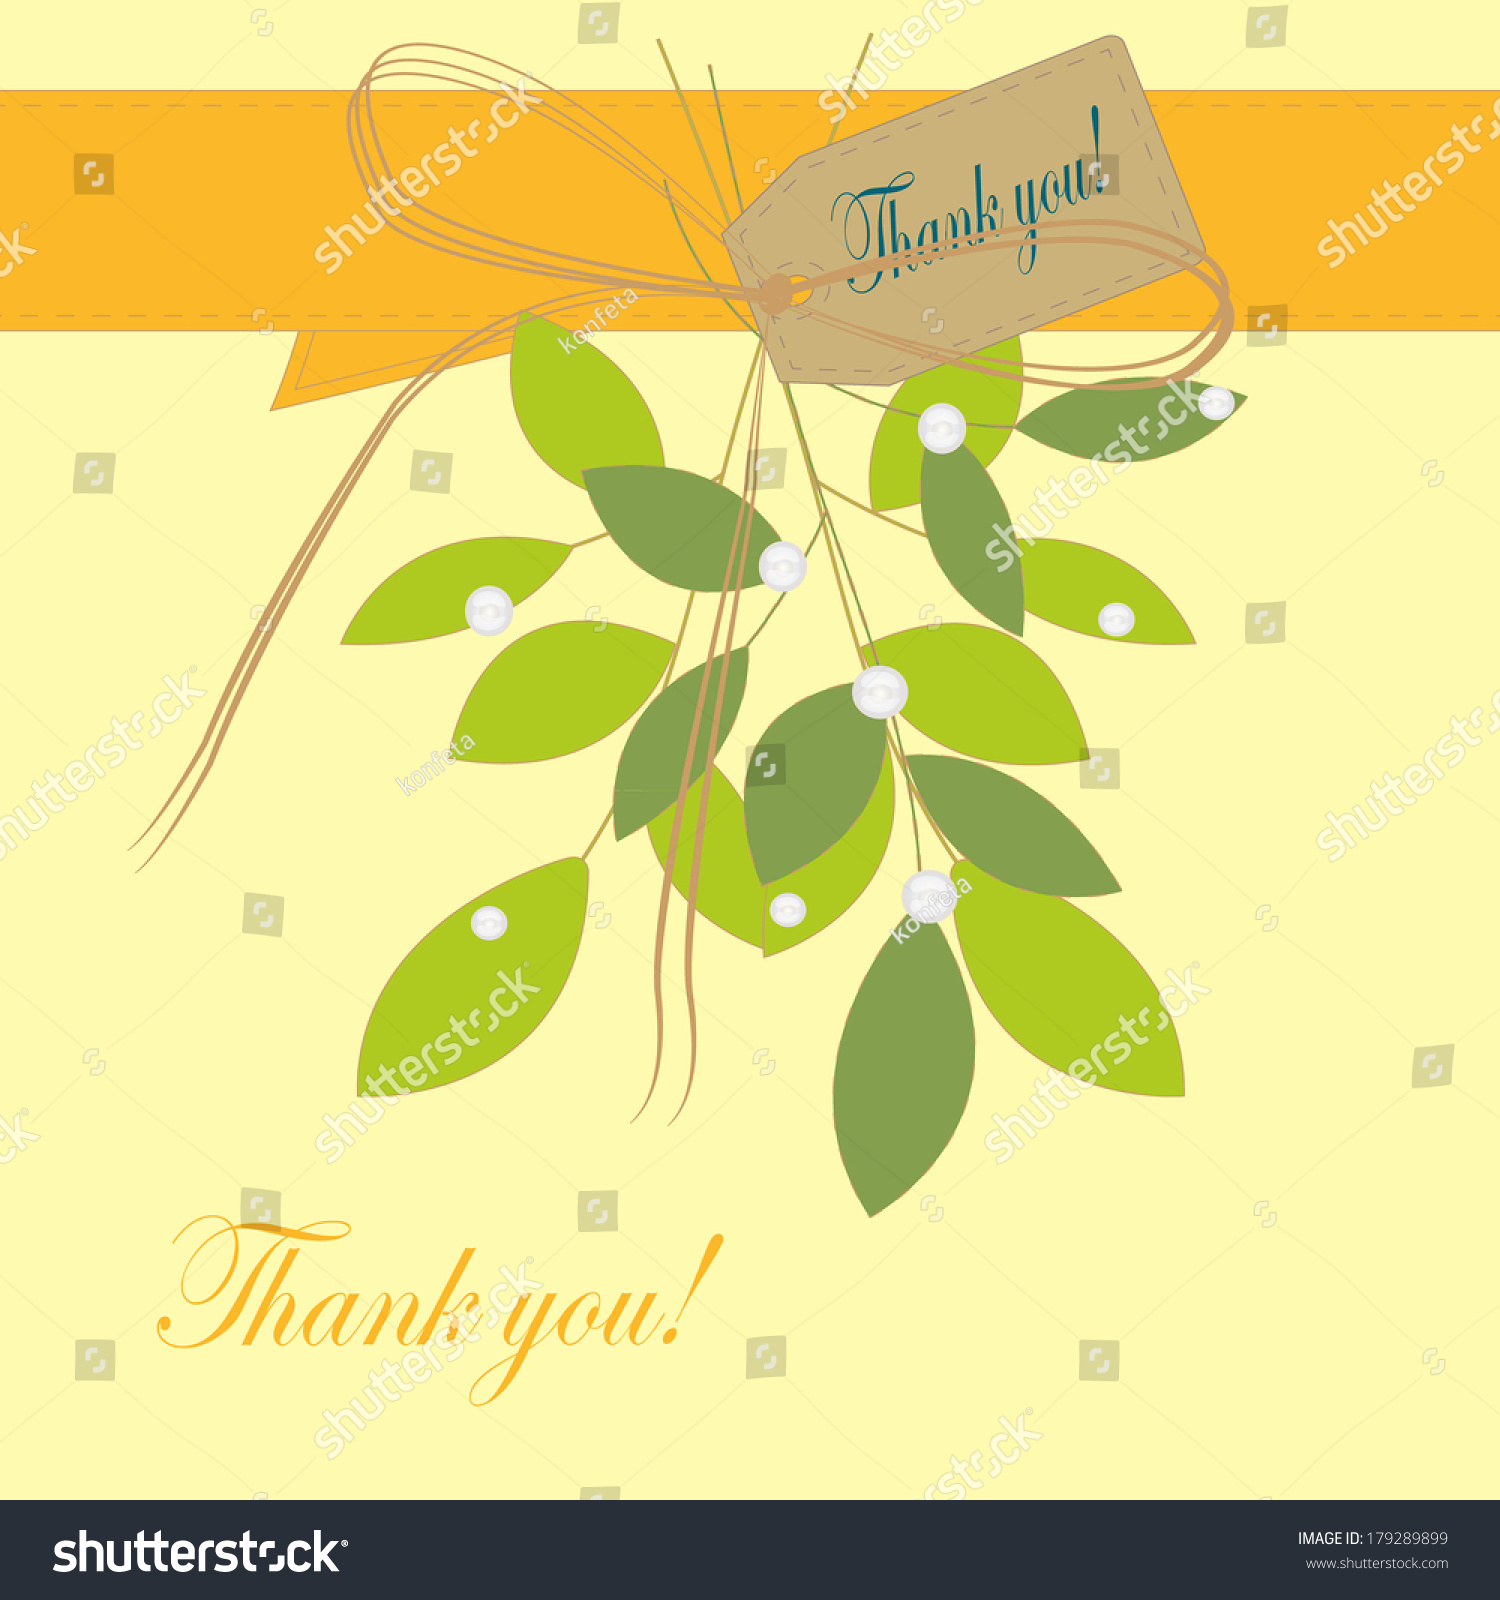 Vector thank you script greeting card stock vector 179289899 vector thank you script greeting card with cute floral elements kristyandbryce Choice Image